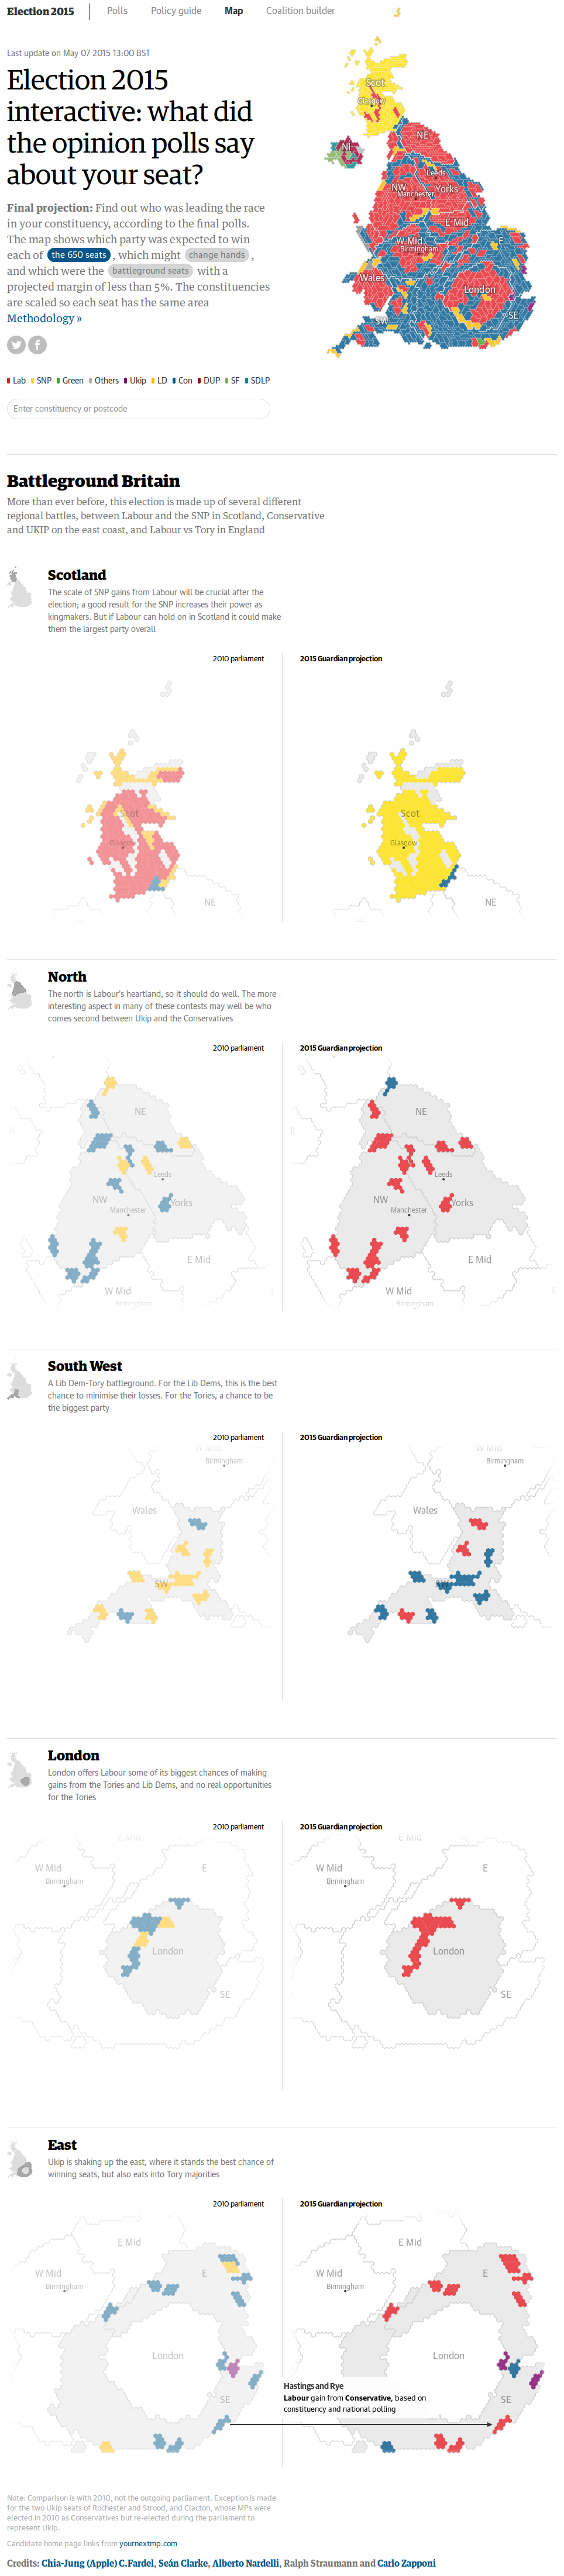 Election 2015 interactive: what did the opinion polls say about your seat?